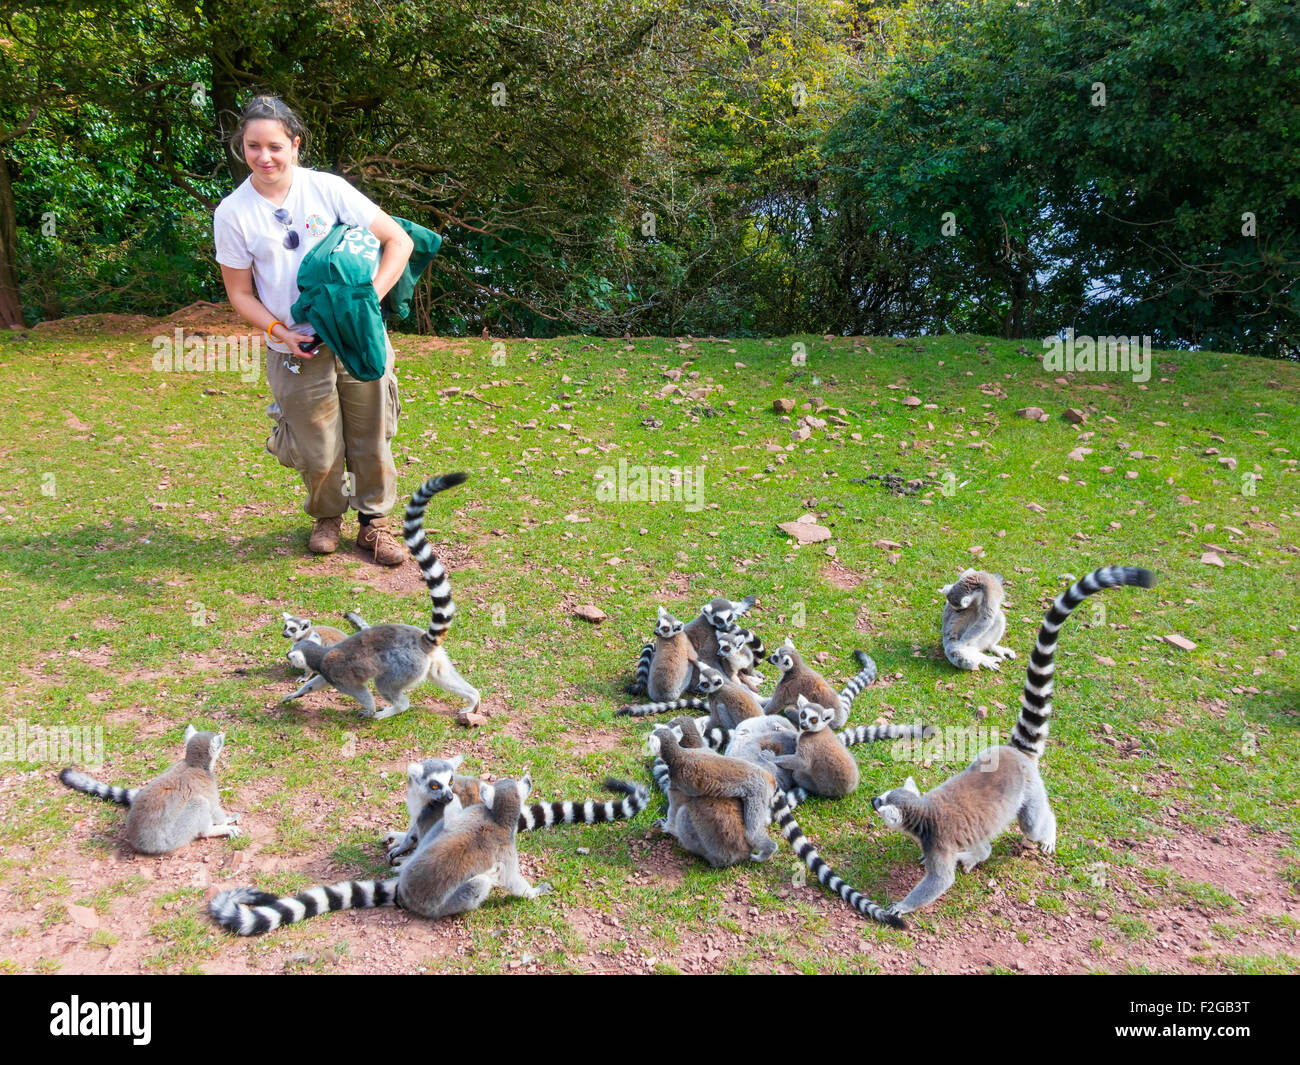 A woman Keeper giving a talk prior to feeding Ring Tailed Lemurs at South Lakes Zoo Dalton Cumbria UK - Stock Image